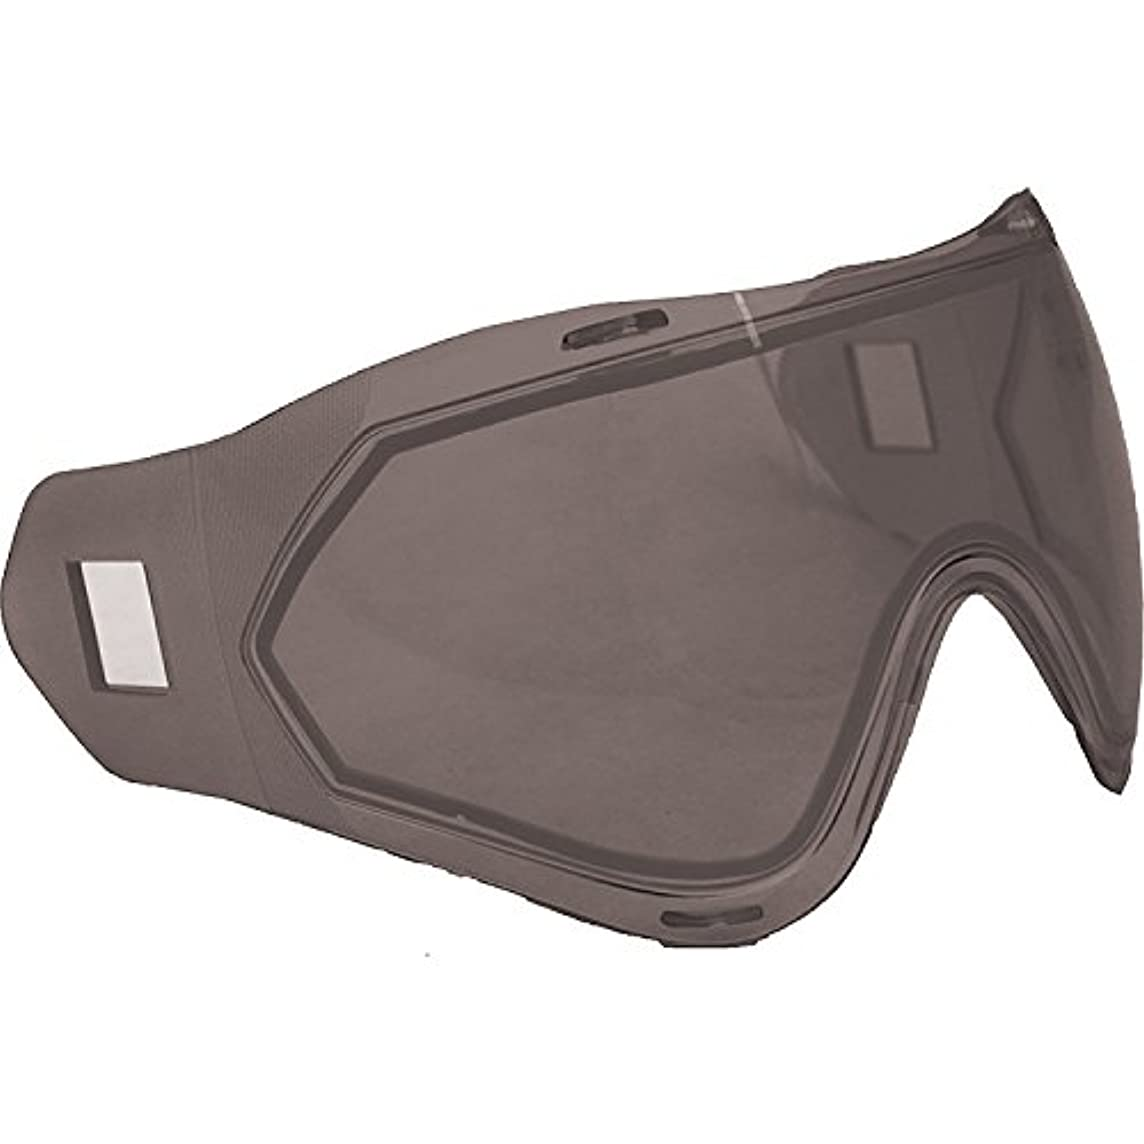 Sly Profit Thermal Goggle Replacement Lens